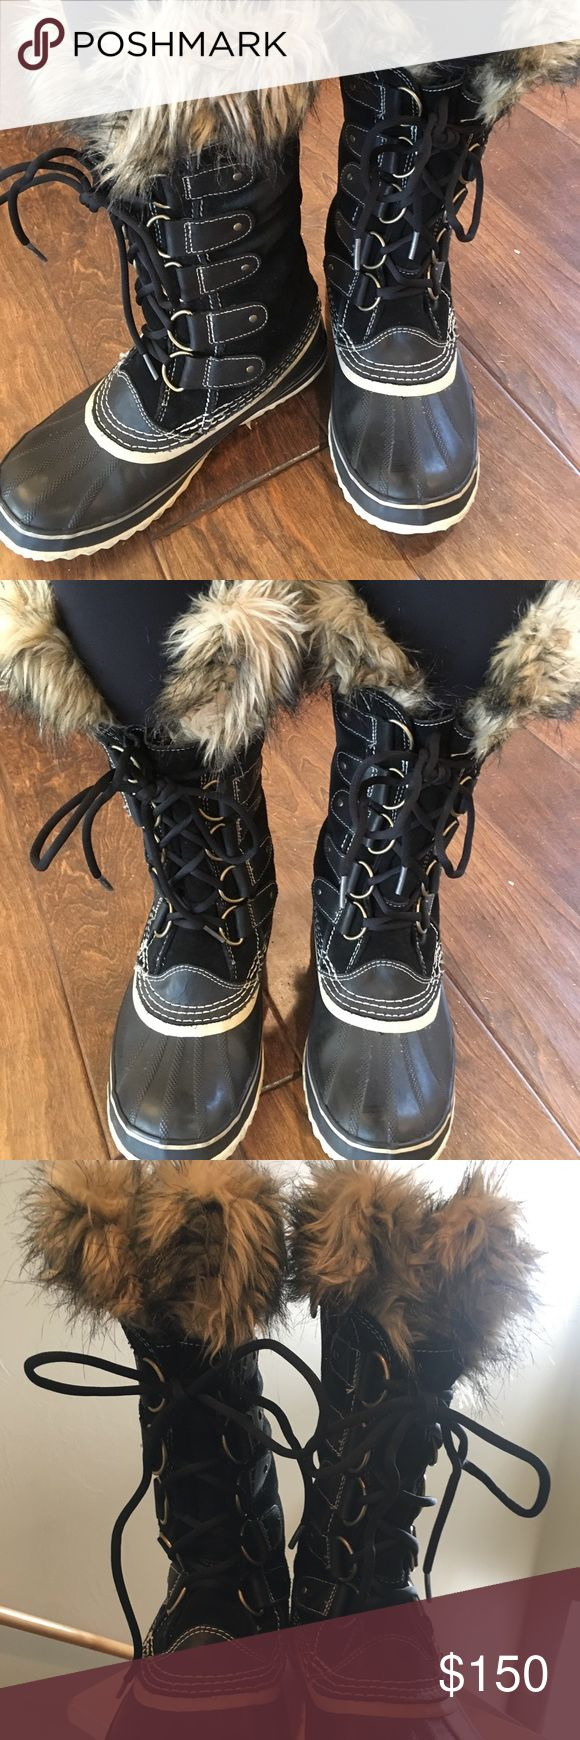 Black Sorel Snow Boots Black Sorel Snow Boots with Fur. Like New! Sorel Shoes Winter & Rain Boots